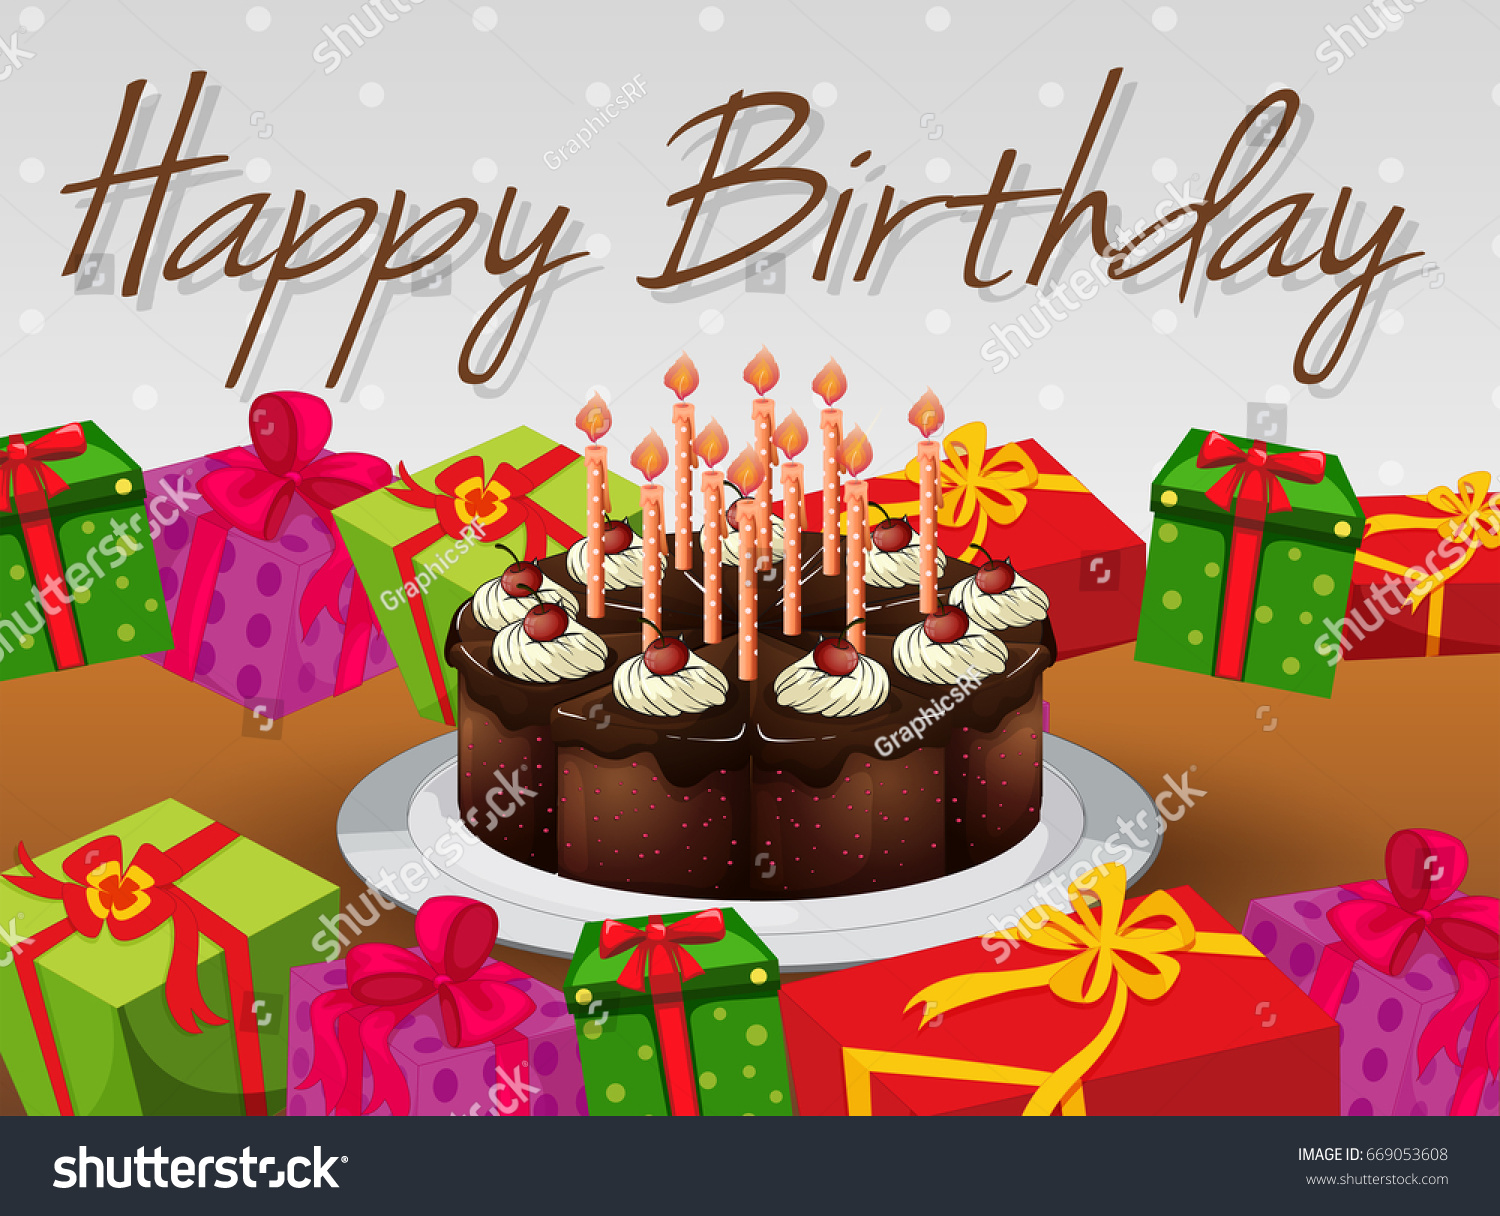 Birthday Cards Cake ~ Happy birthday cards for girlfriend happy birthday images